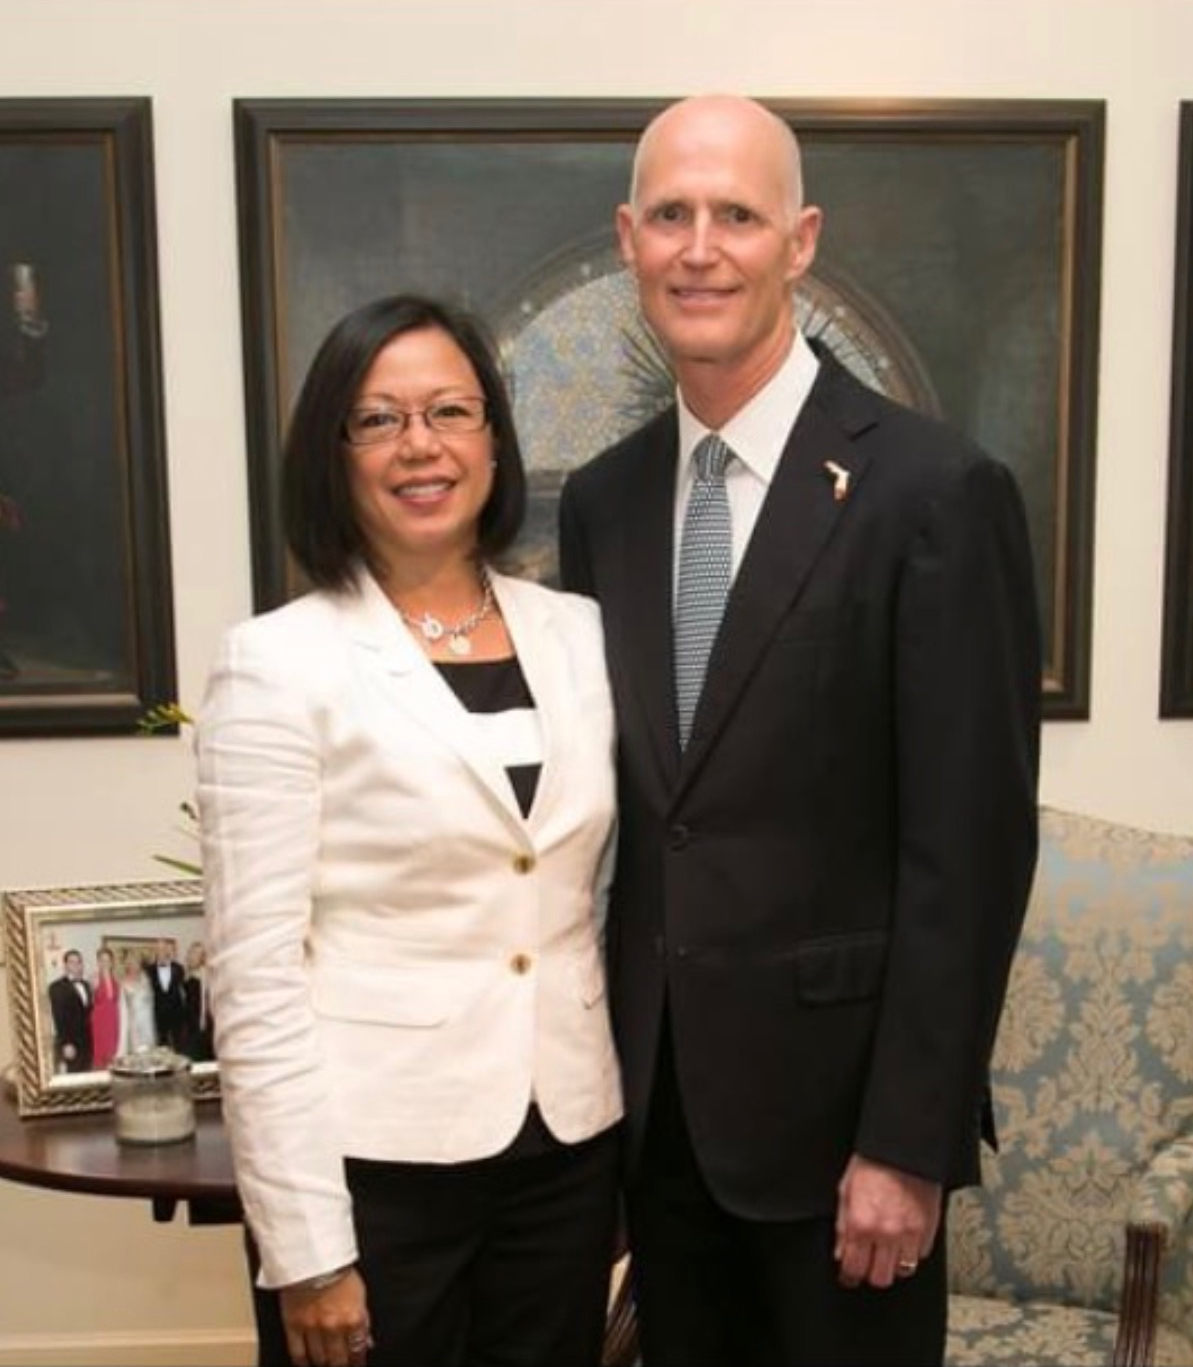 With Florida Governor Rick Scott